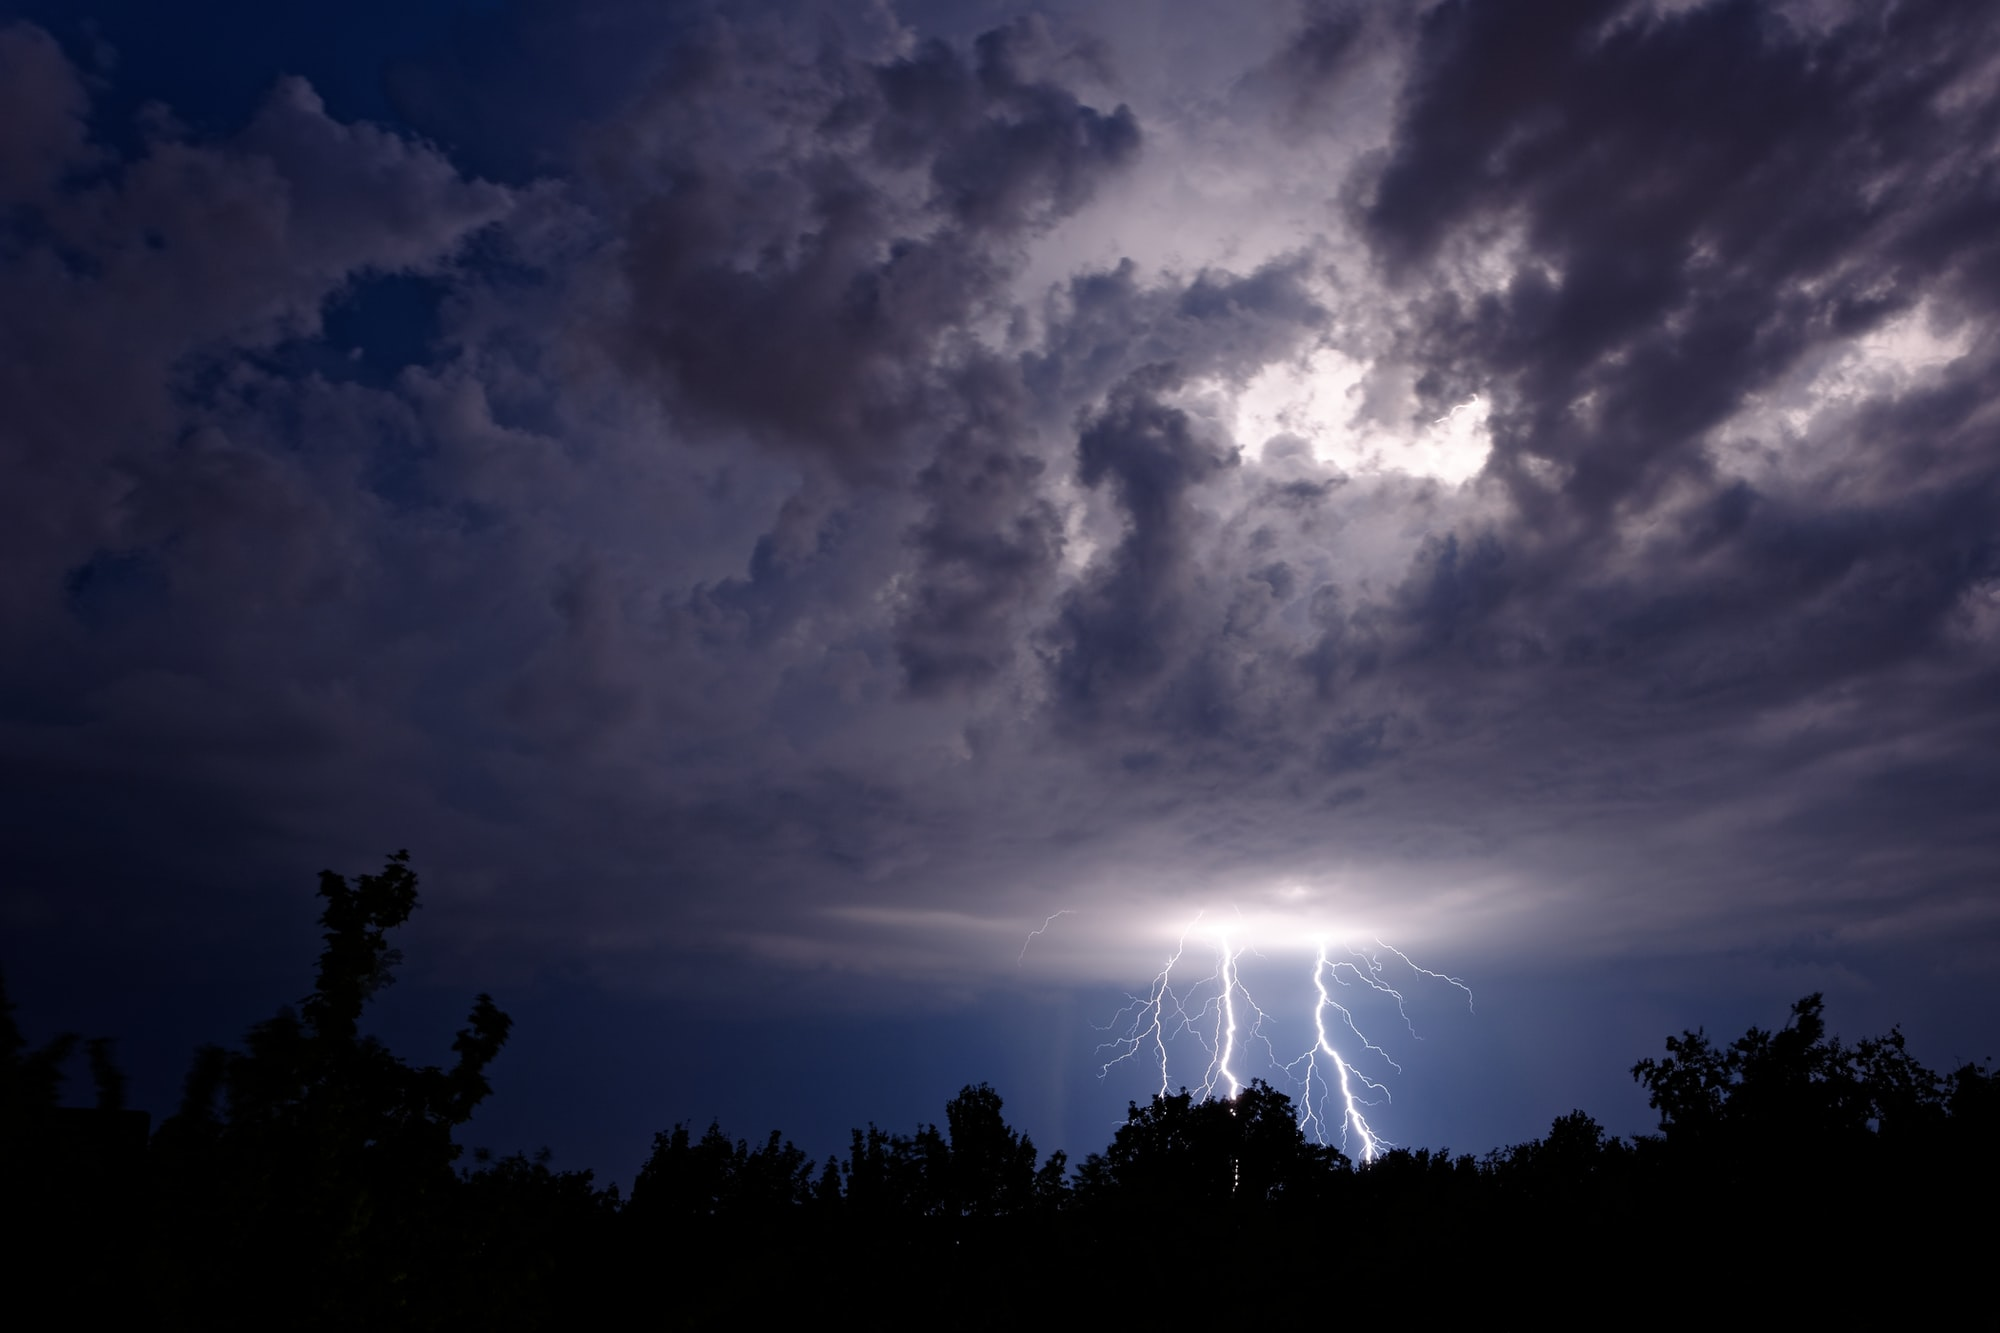 It was a warm summer night when a thunderstorm passed - and I could easily watch it from my balcony. What a fascinating spectacle!